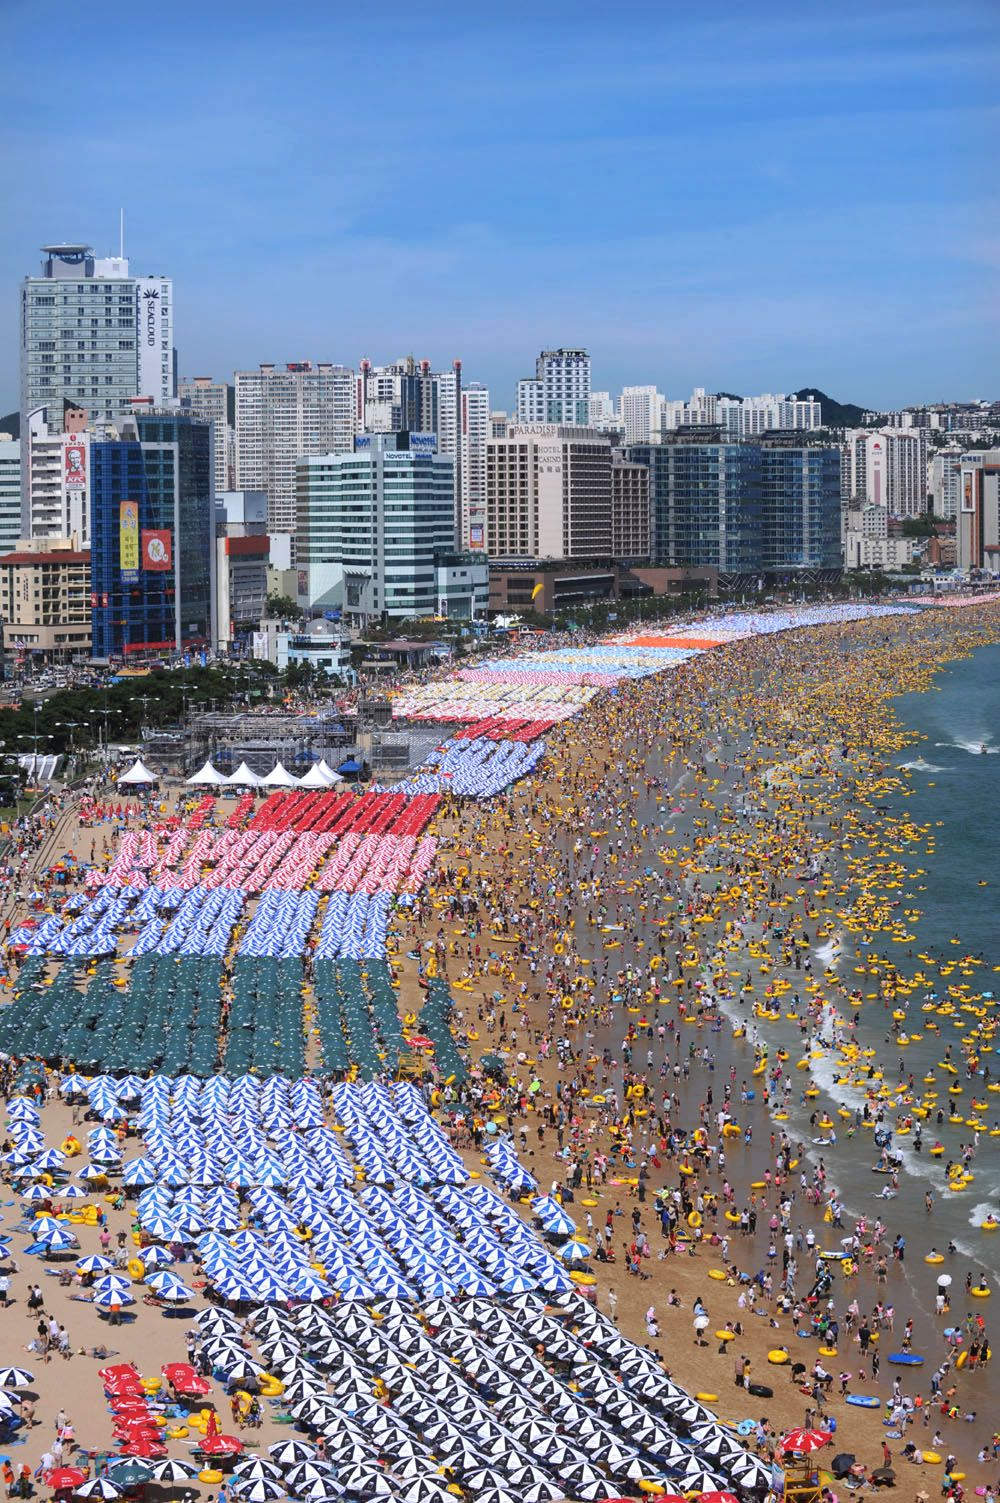 Haeundae Beach in Busan, South Korea. Not likely to be crowded in springtime but a beautiful sight to sea, nonetheless ;)